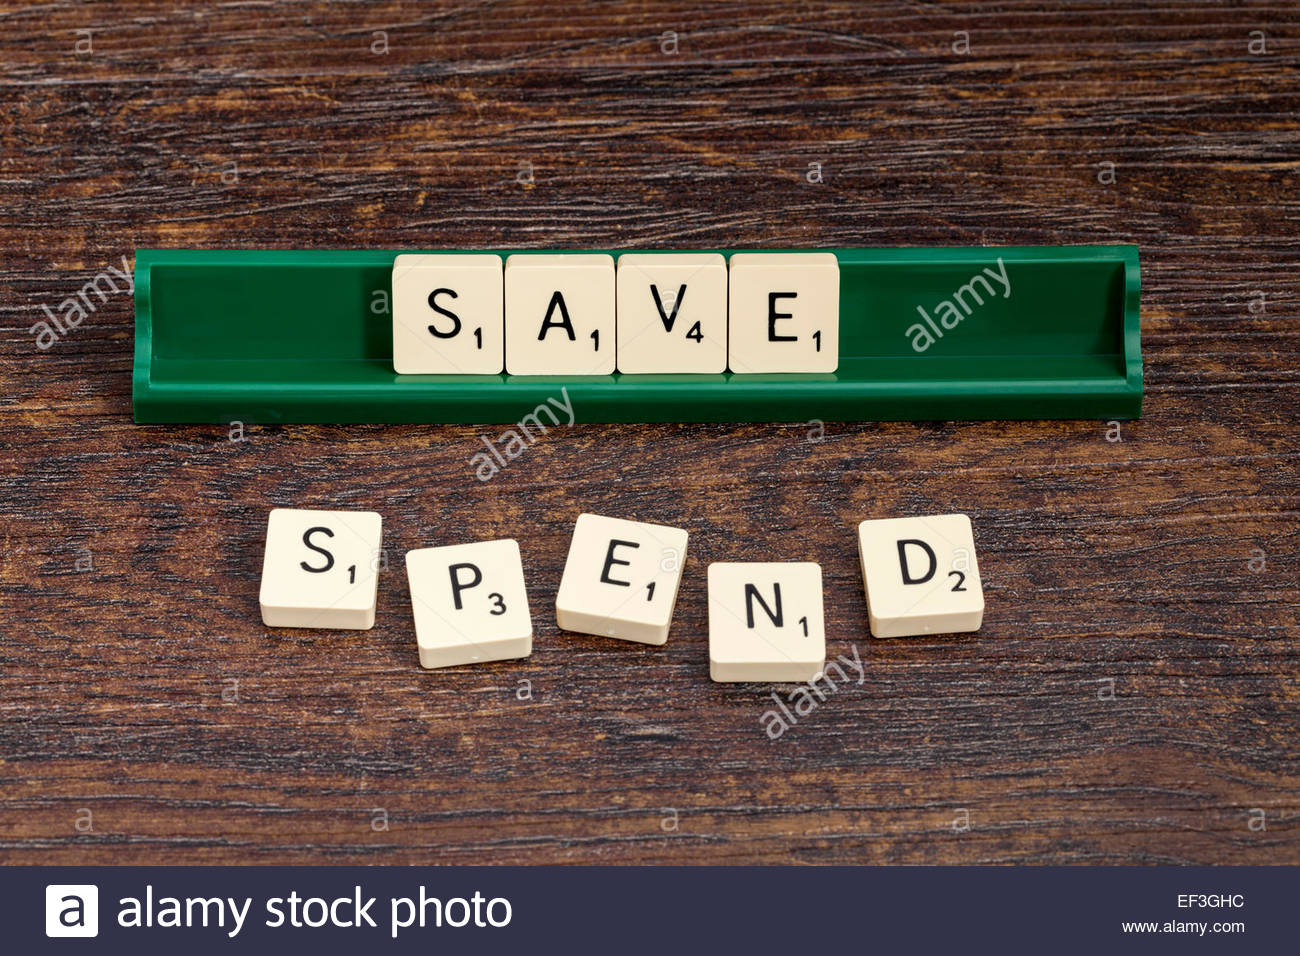 Save and Spend spelled out with scrabble letters. - Stock Image